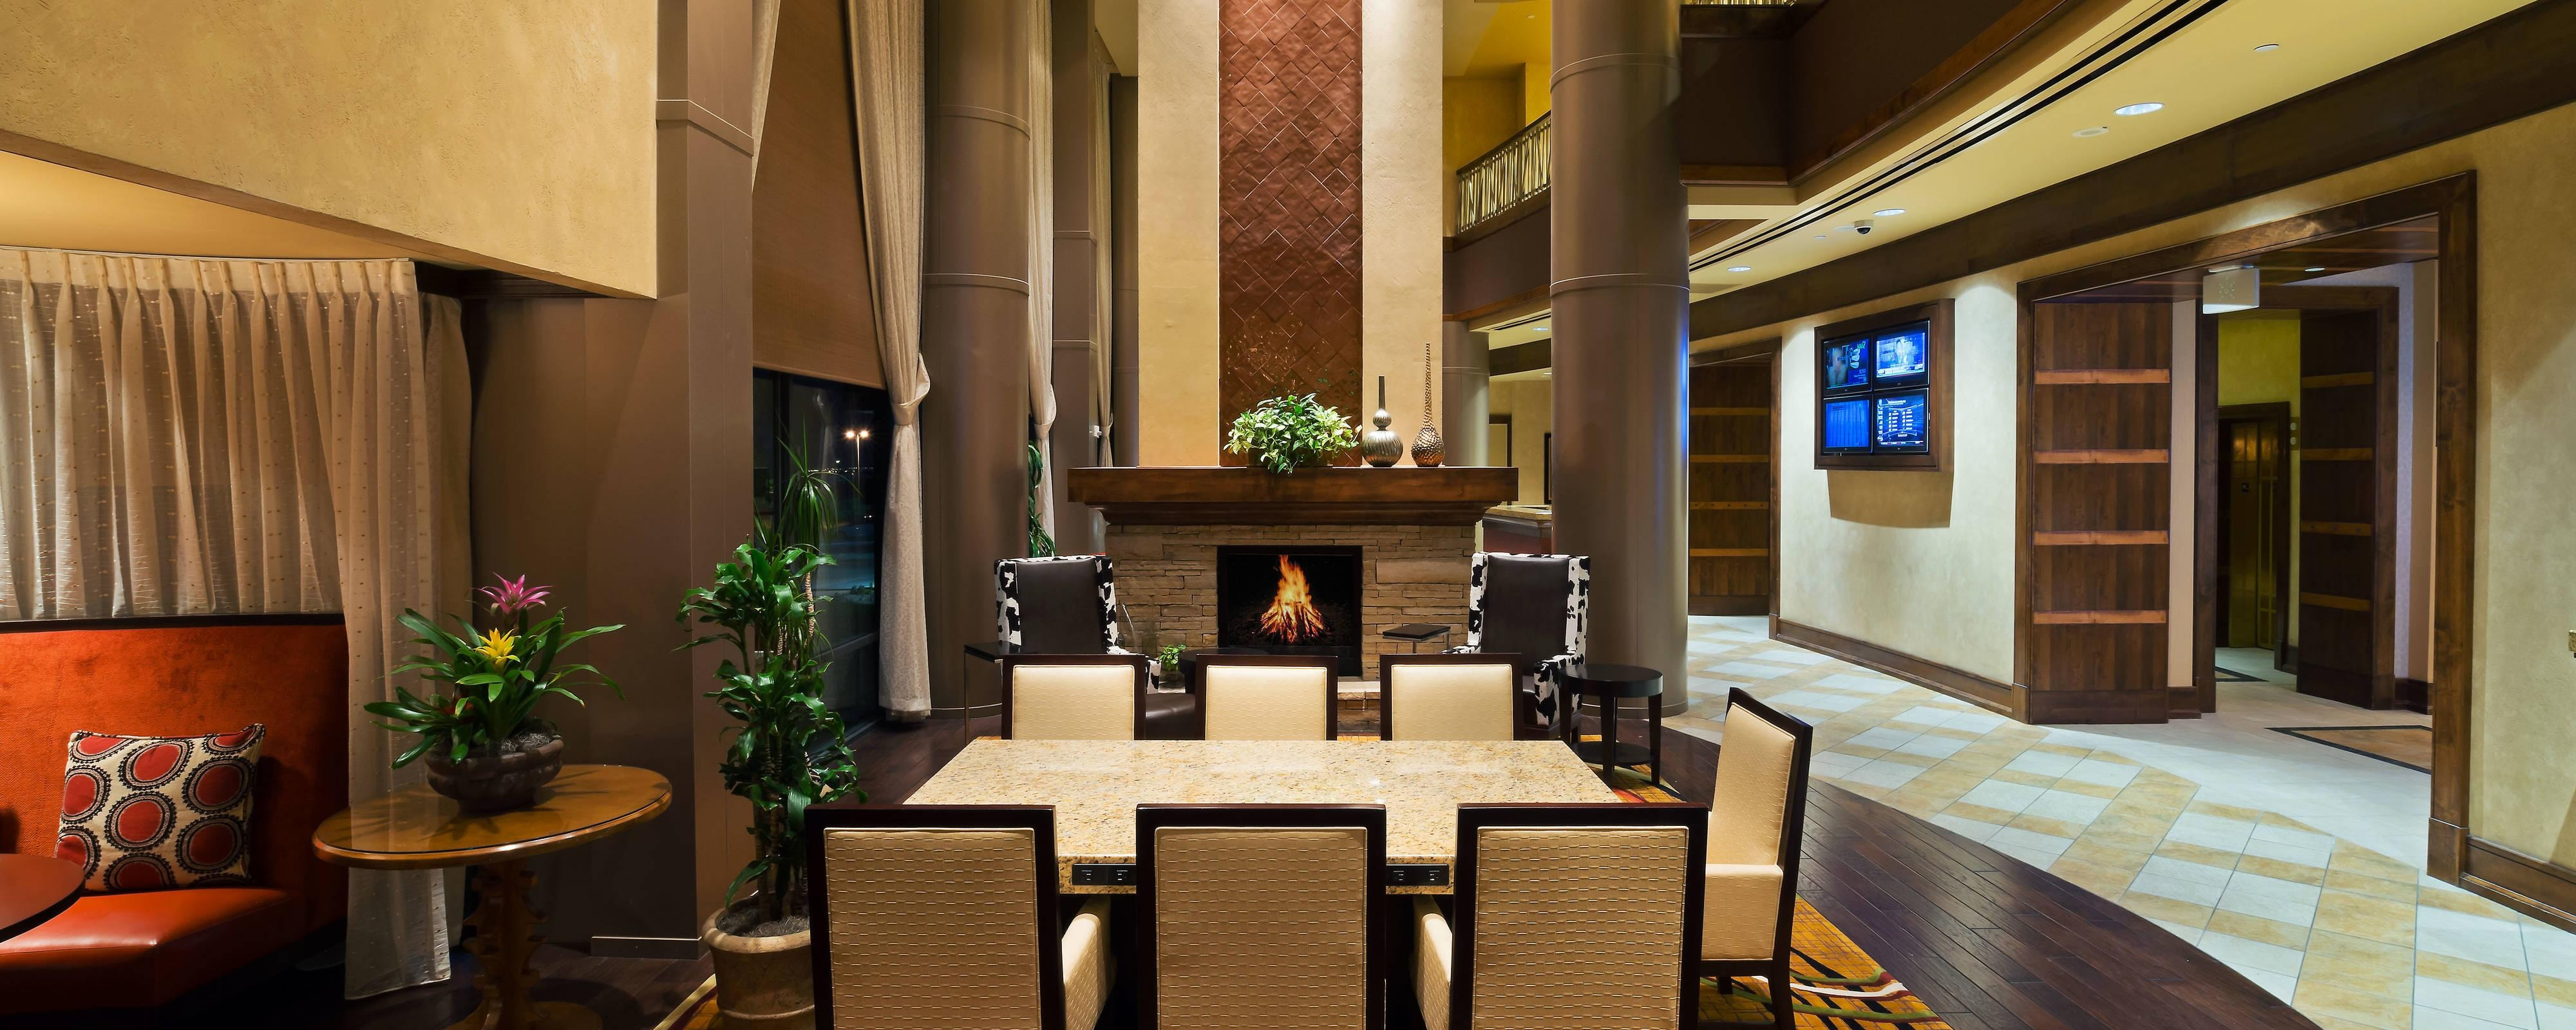 Hotels In Lone Tree Co Denver Marriott South At Park